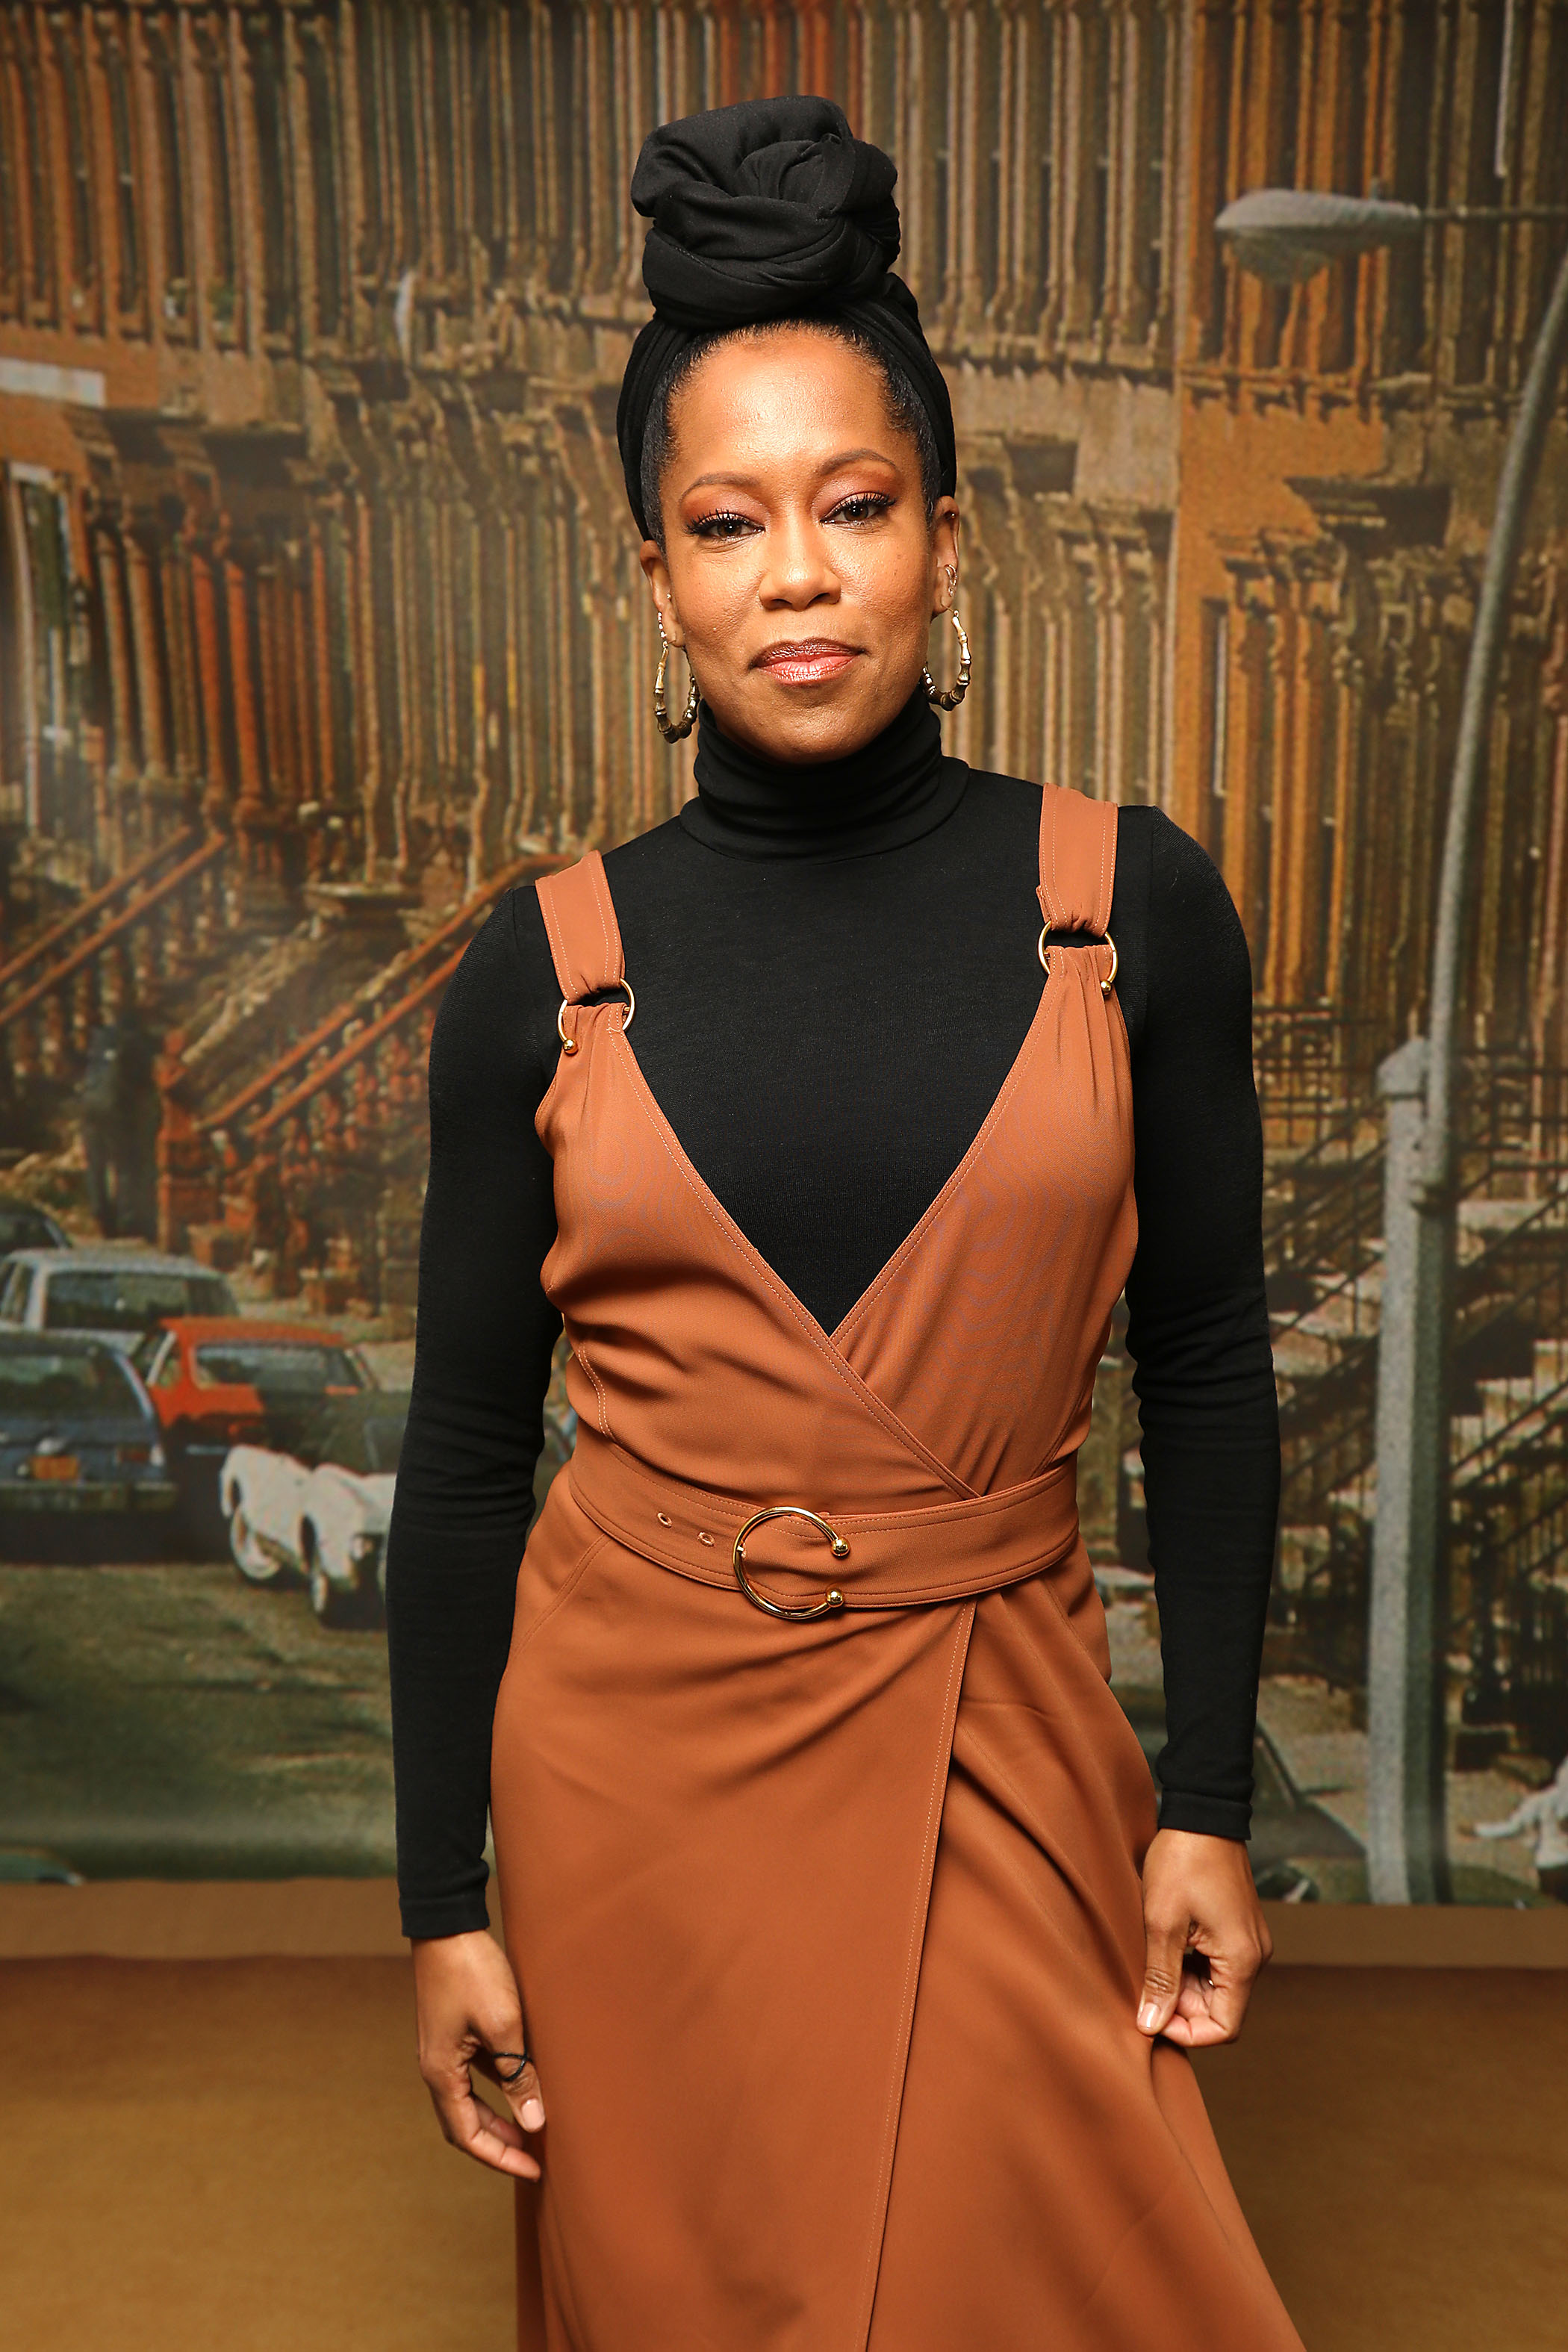 Regina King Stunned Journalist Didn't Know Who She Was